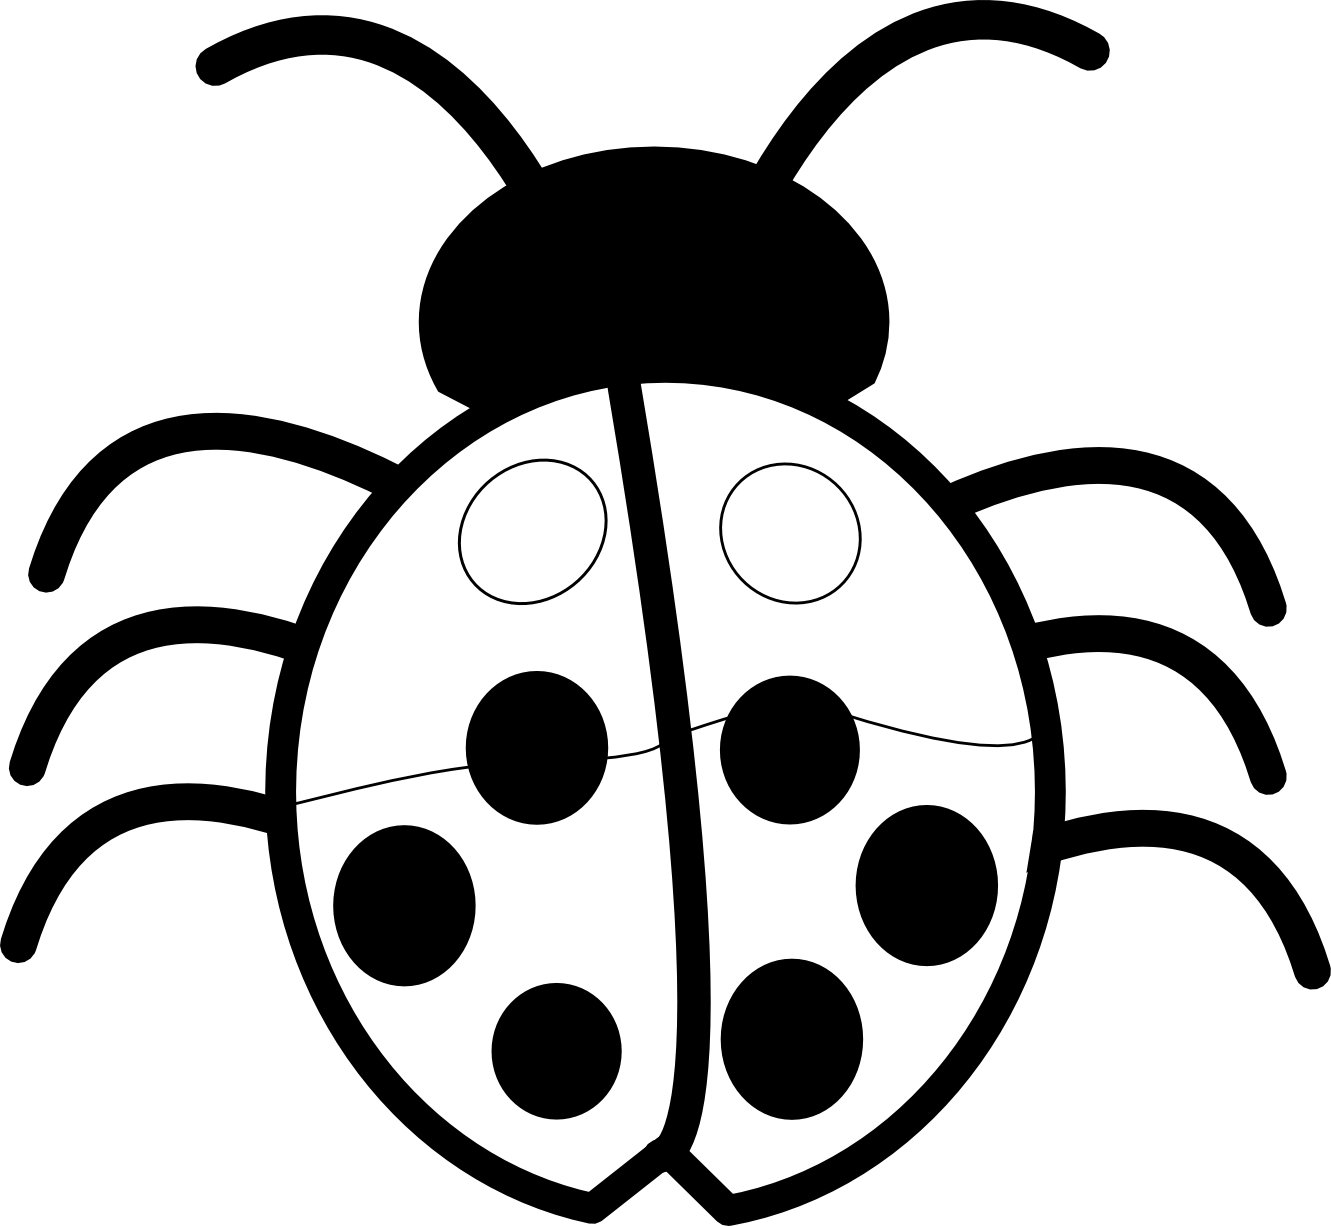 Ladybug Outline Black And White   Clipart Best